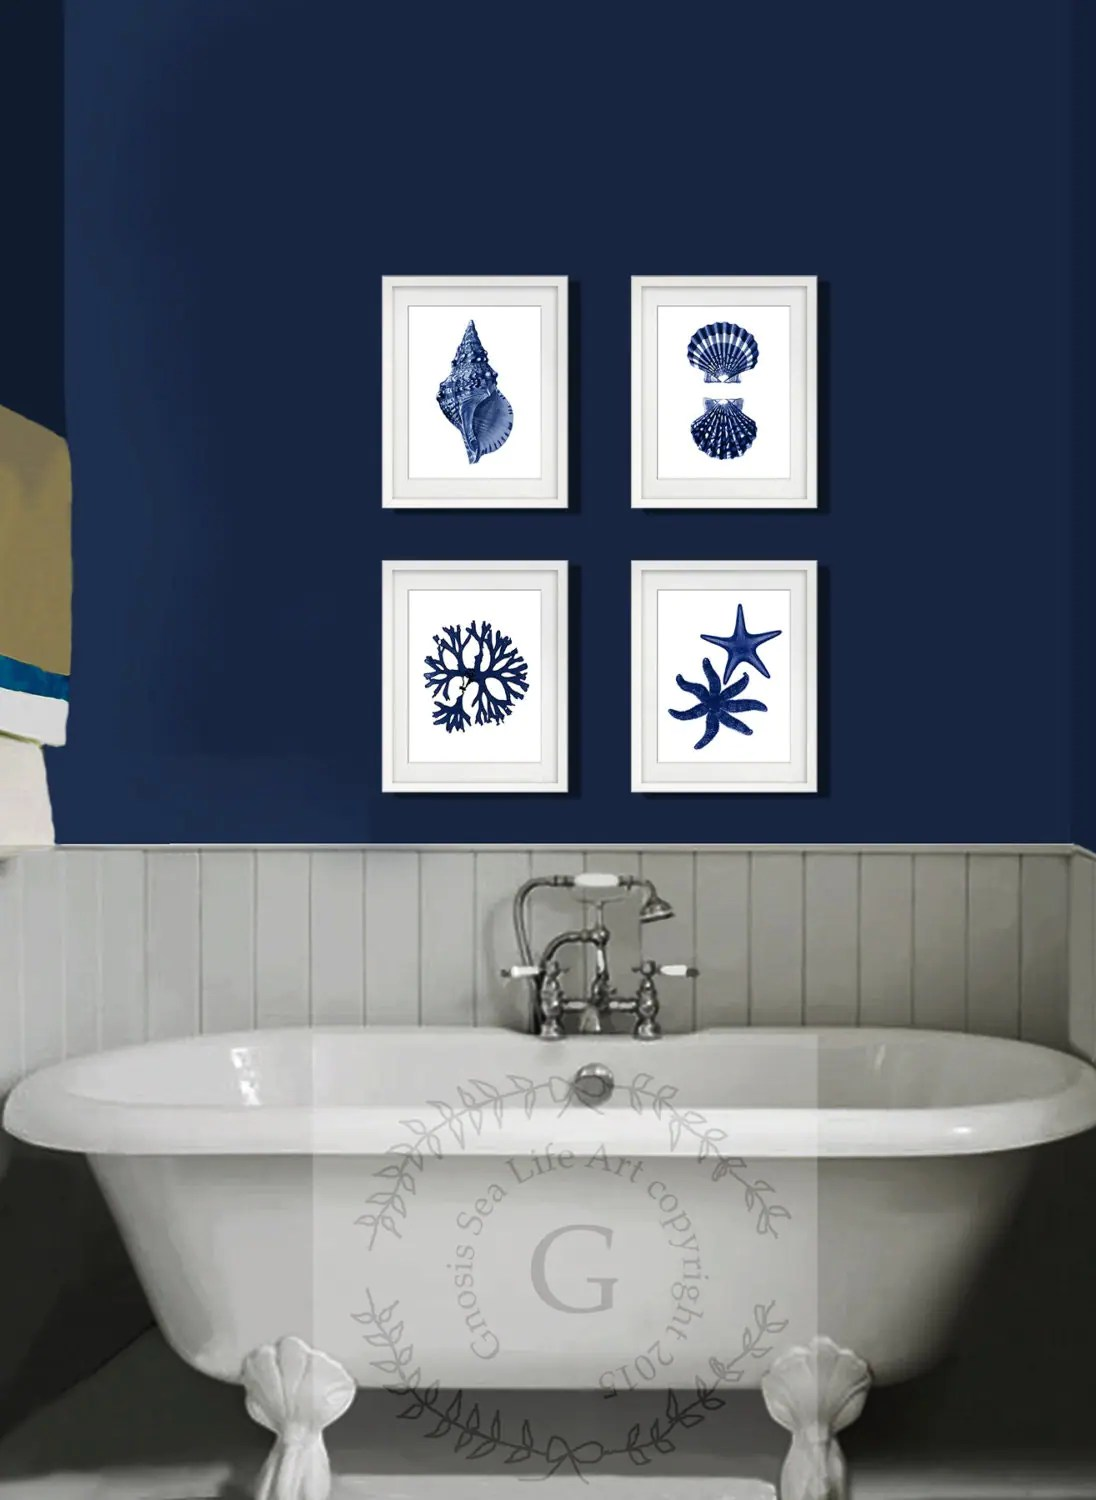 Bathroom Wall Art And Decor Coastal Wall Decor Navy Blue Wall Art Set Of 4 Beach Decor